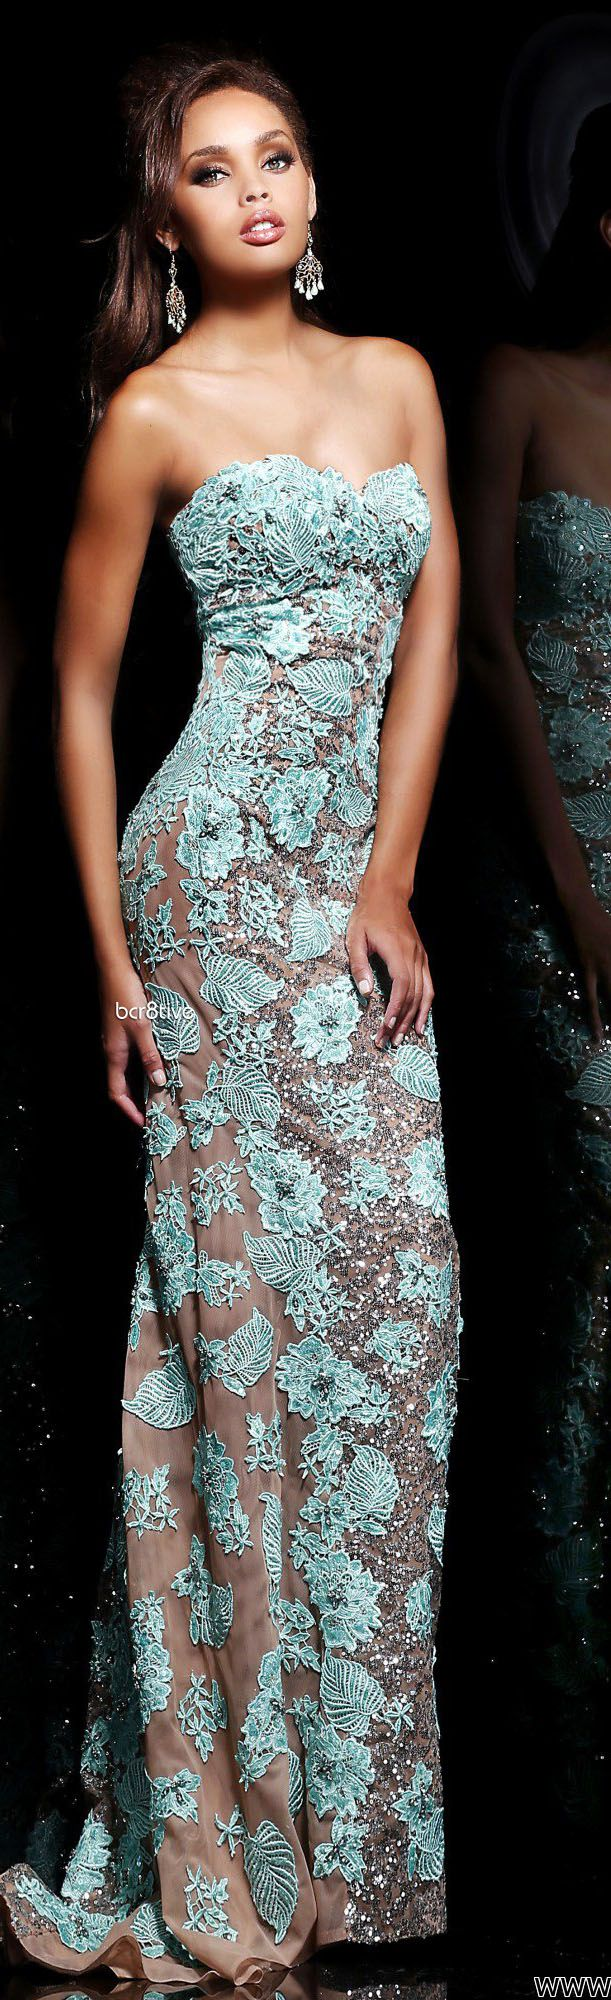 522 Best Glamorous Dress Images On Pinterest Dream Dress Party